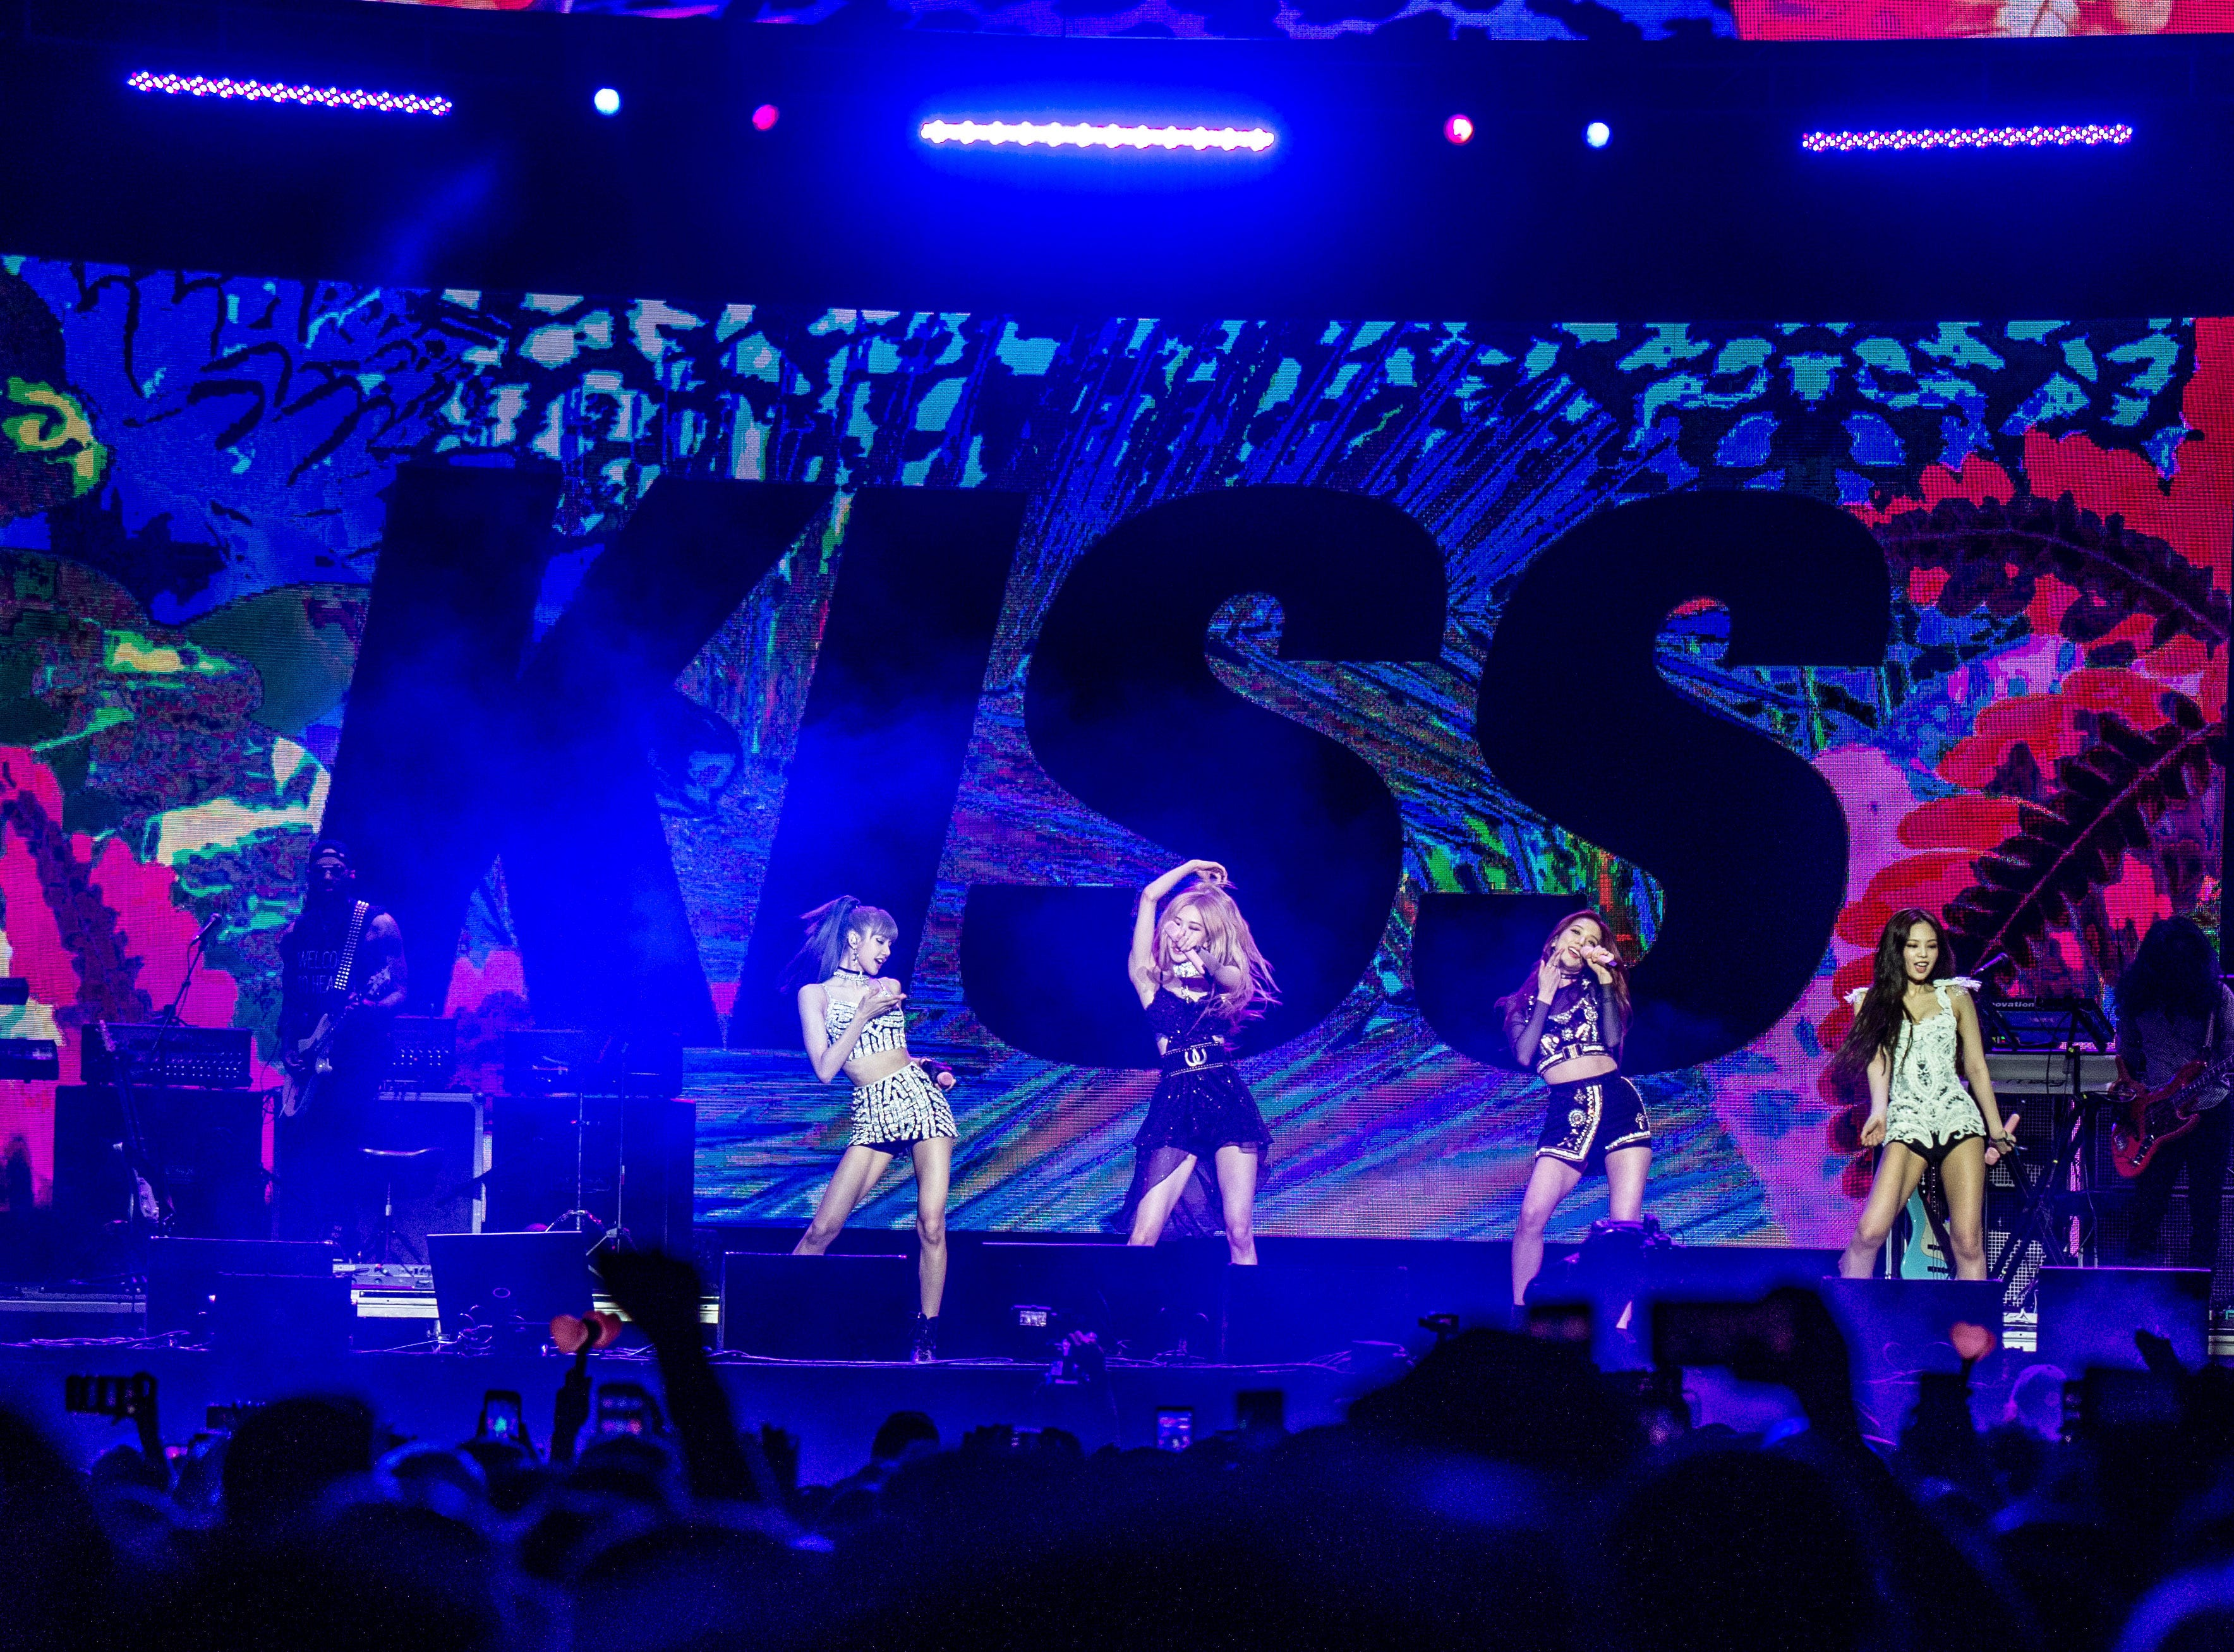 Lisa, from left, Rose, Jisoo, and Jennie Kim of BLACKPINK perform at the Coachella Music & Arts Festival at the Empire Polo Club on Friday, April 12, 2019, in Indio, Calif.